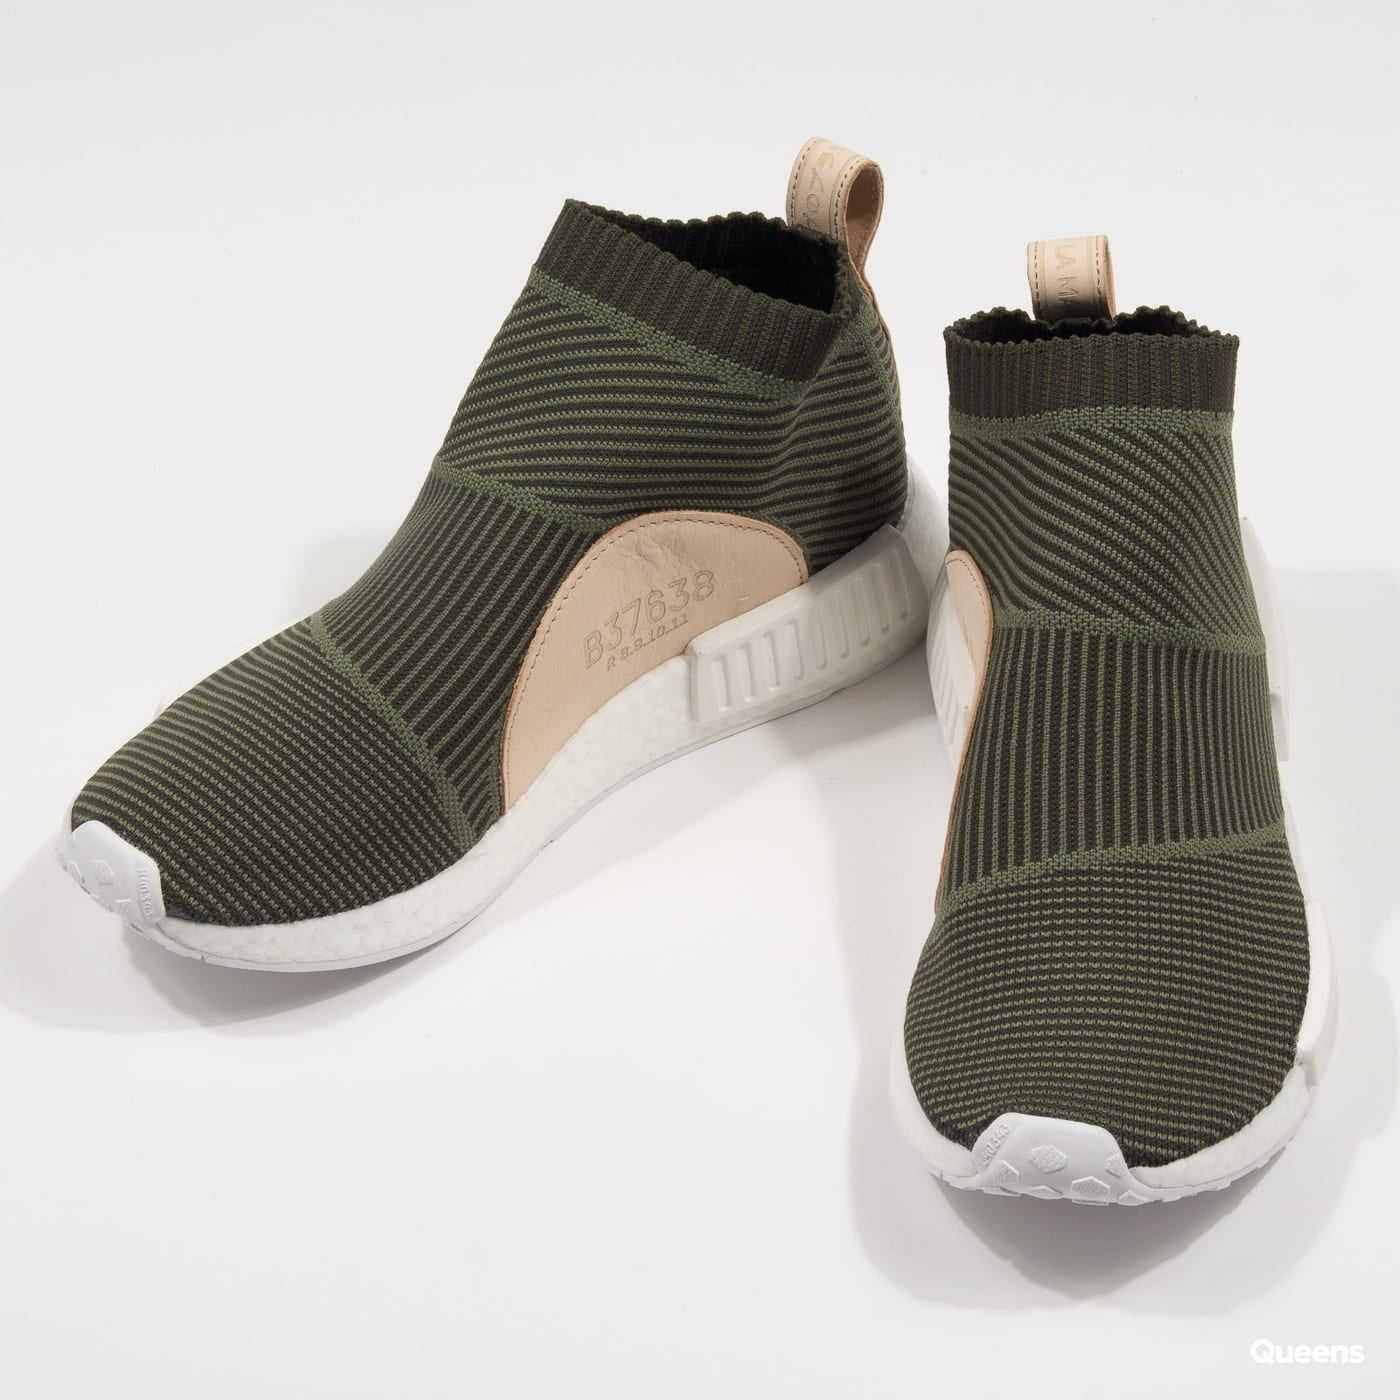 adidas Originals NMD_CS1 PK night cargo / base green / ftwwht